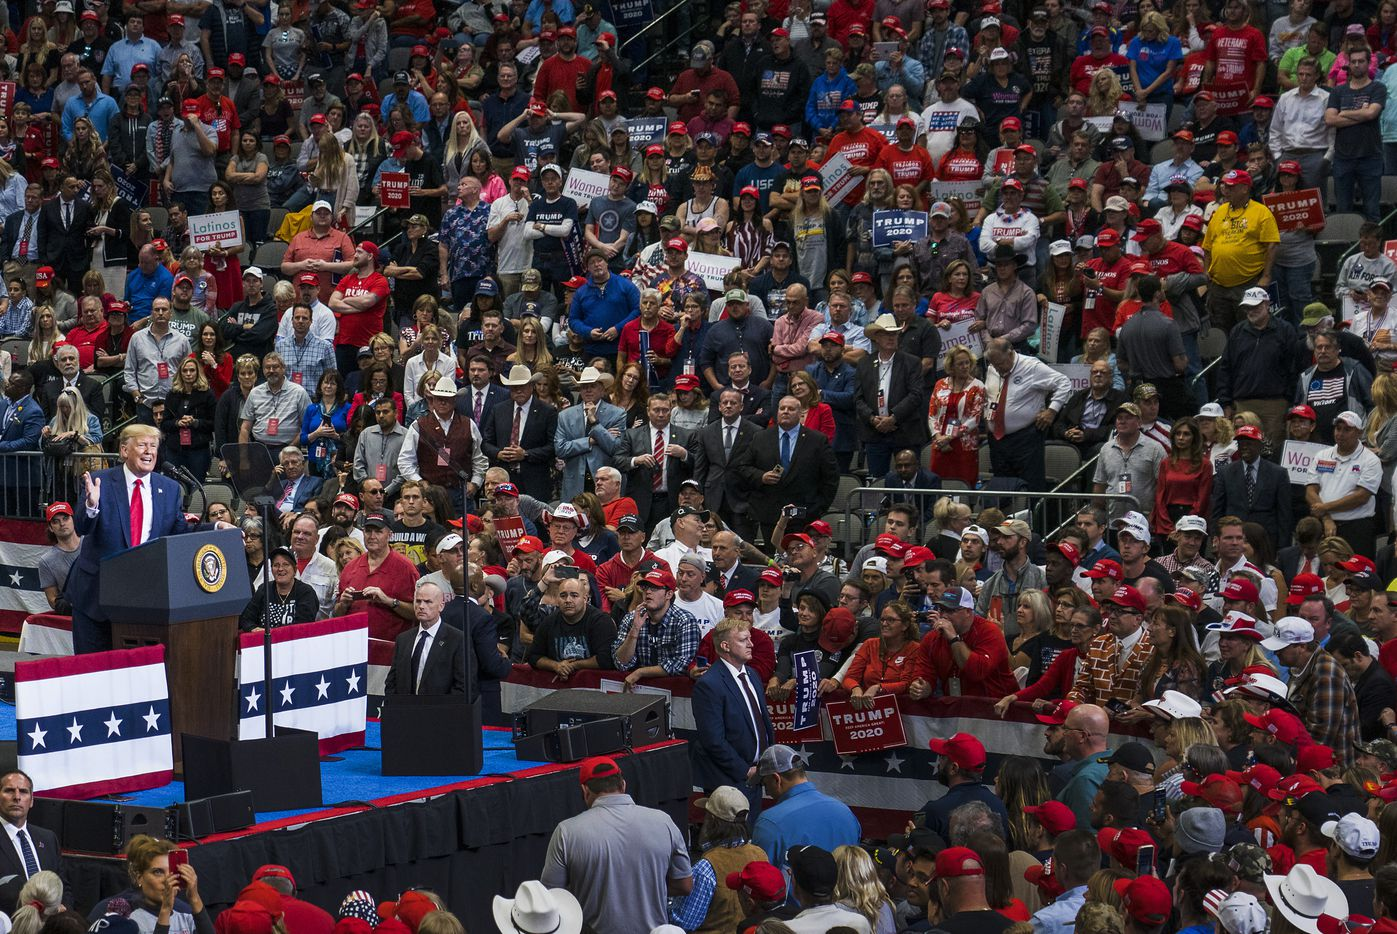 President Donald Trump addresses a campaign rally at the American Airlines Center on Thursday, Oct. 17, 2019, in Dallas.